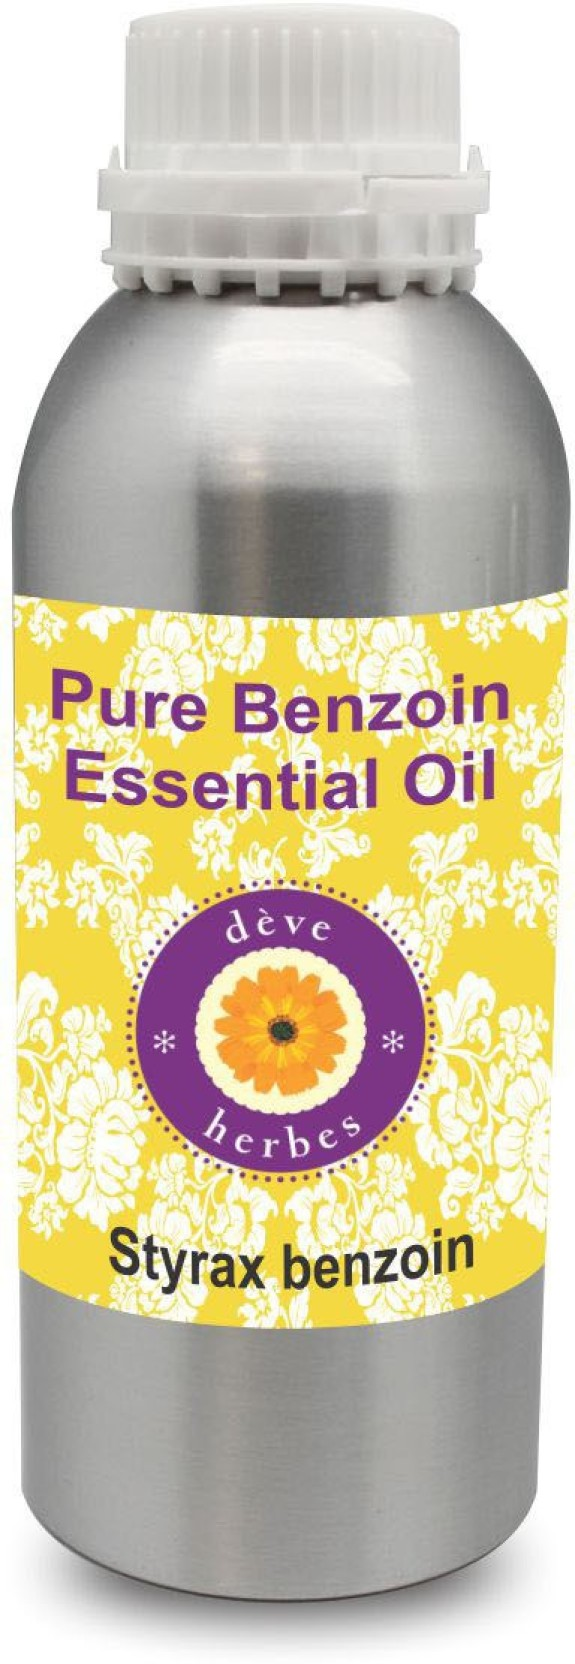 Deve Herbes Pure Benzoin Essential Oil 630ml (Styrax